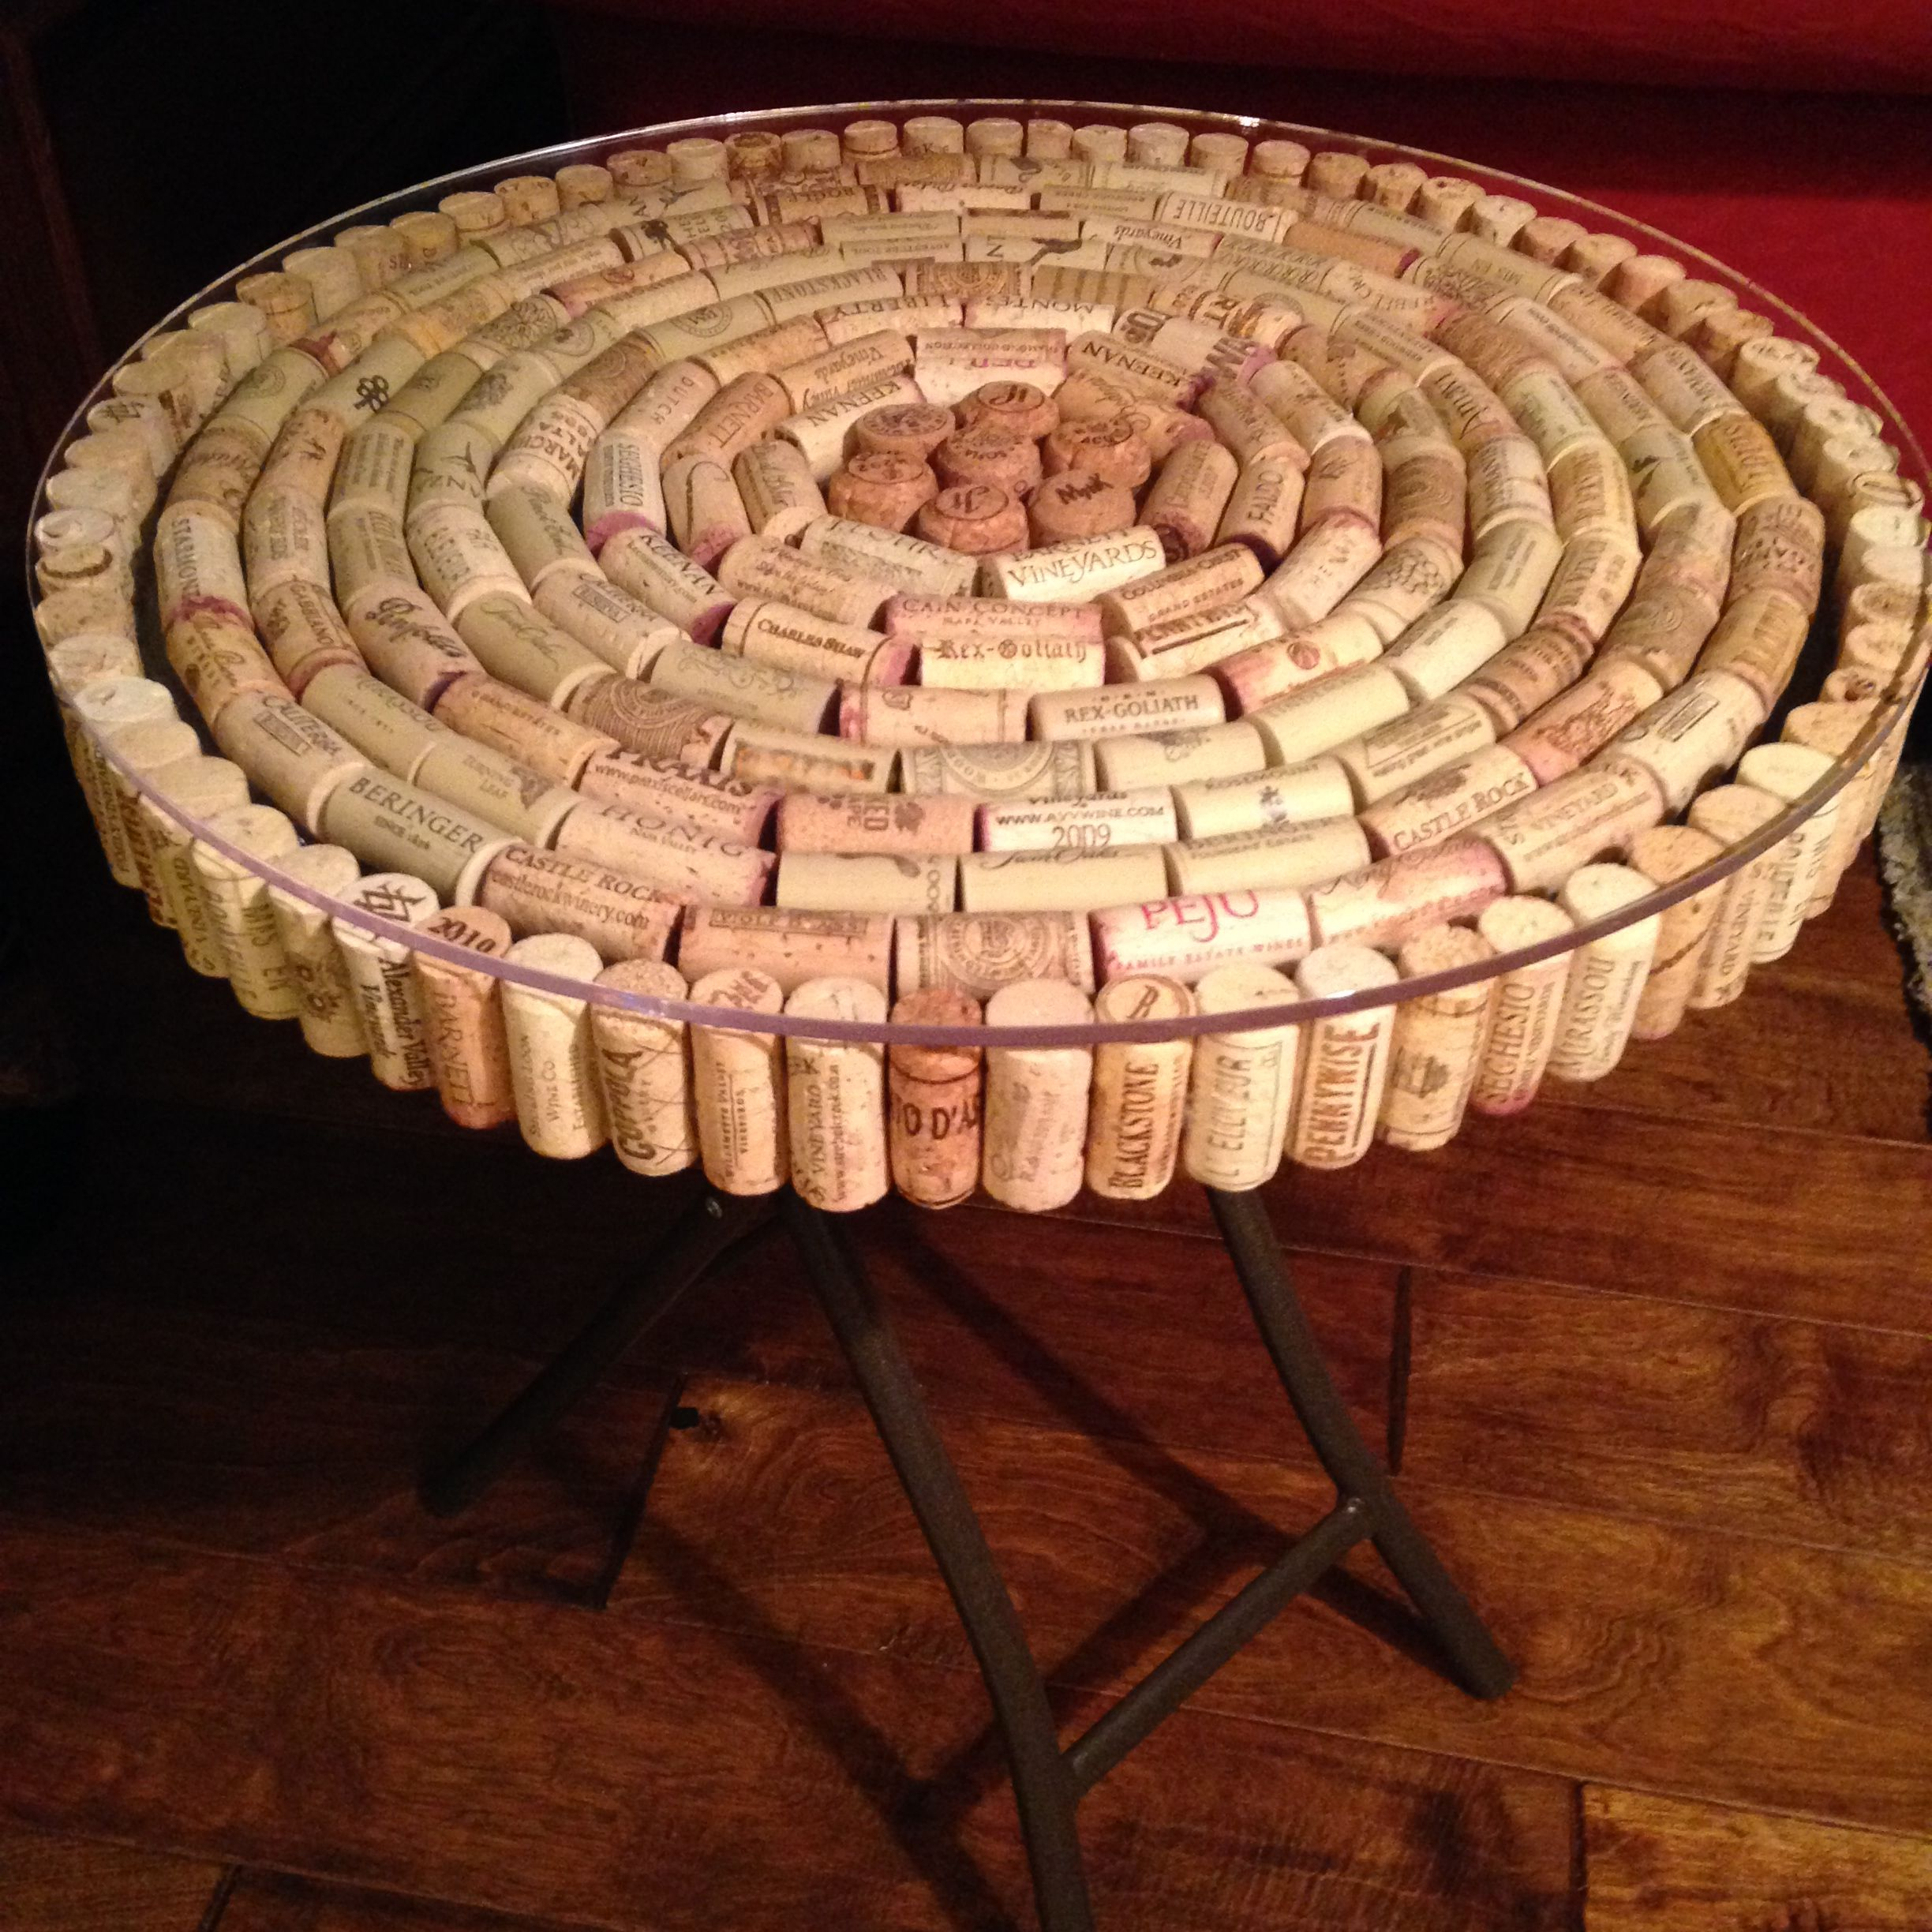 Wine Cork Table Design: With The Help Of Many Volunteers Who Sampled The Wine, I